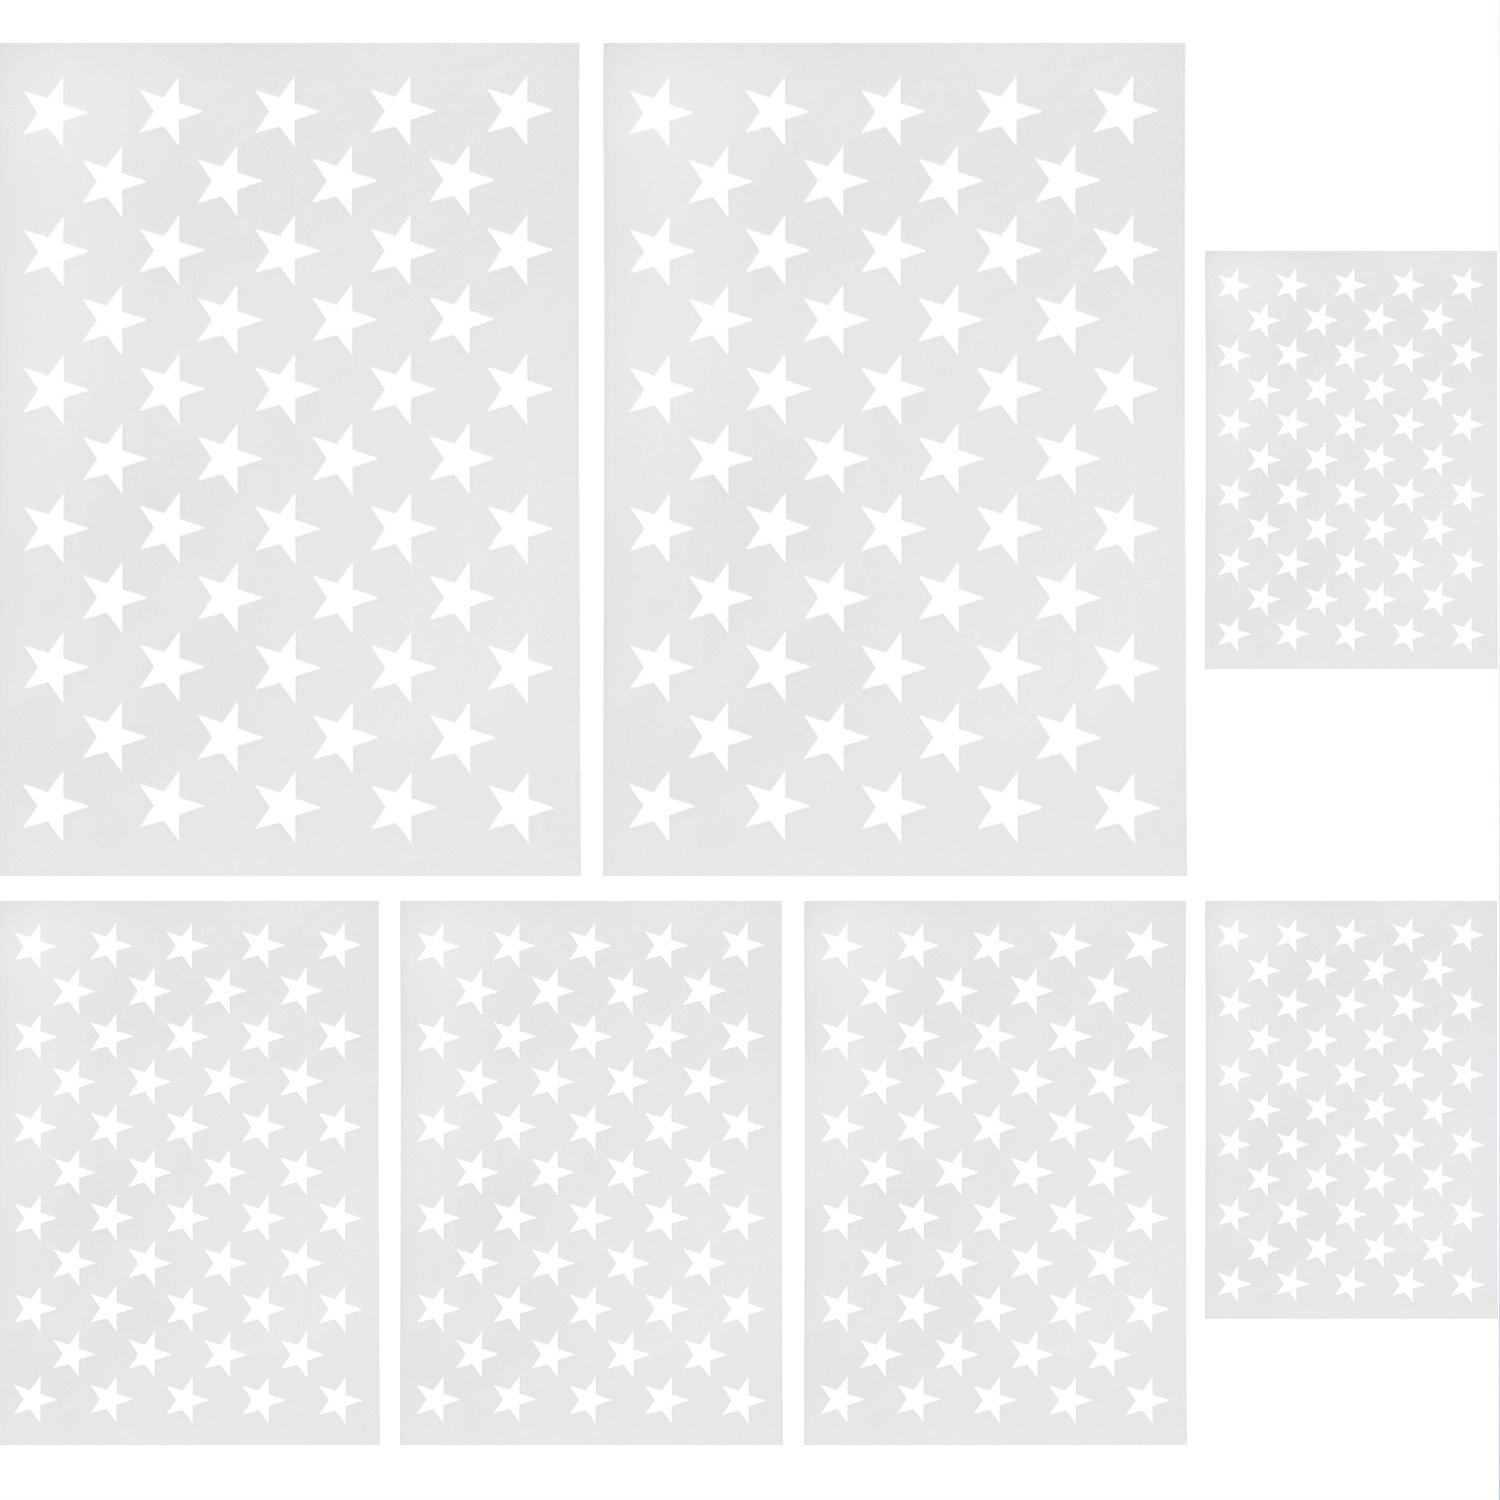 Gejoy 7 Pieces Star Stencil Template 50 Stars American Flag Template for Painting and DIY Making American Flags, 10.5 by 14.82 inch, 7 by 10 inch, 5 by 7 inch 4336890679